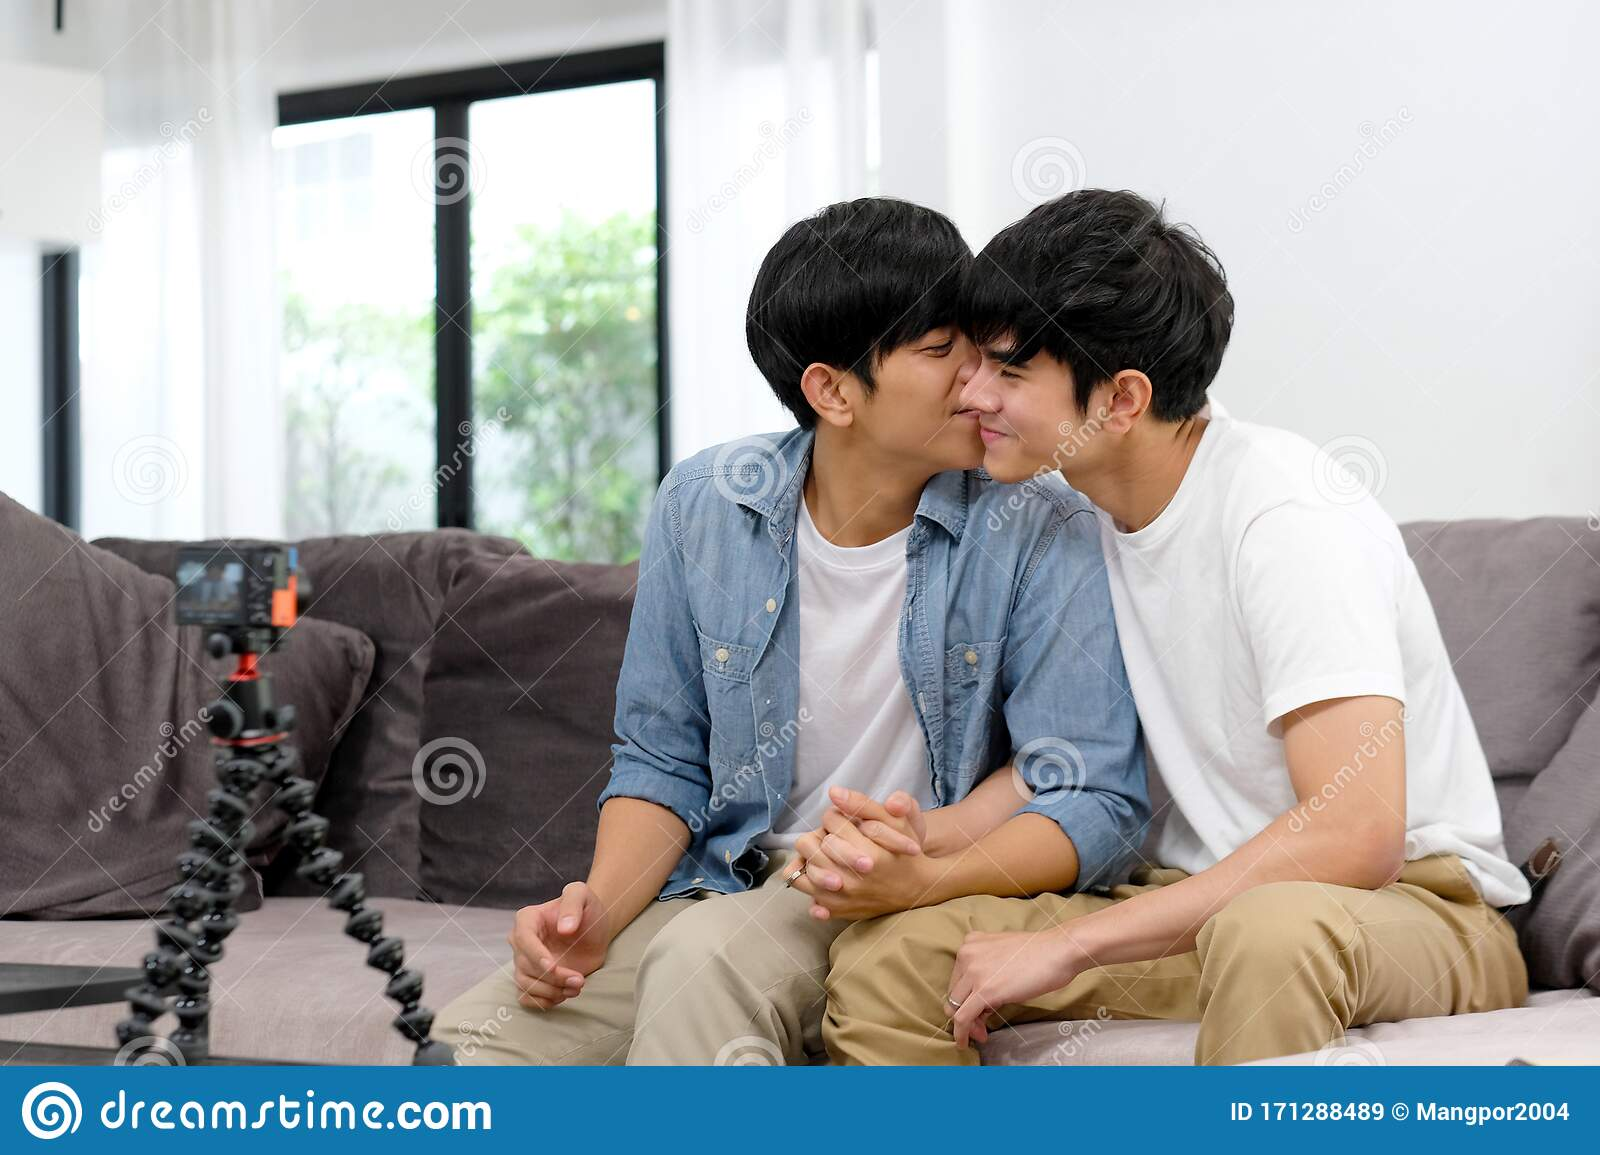 28+ Download Video Gay  PNG